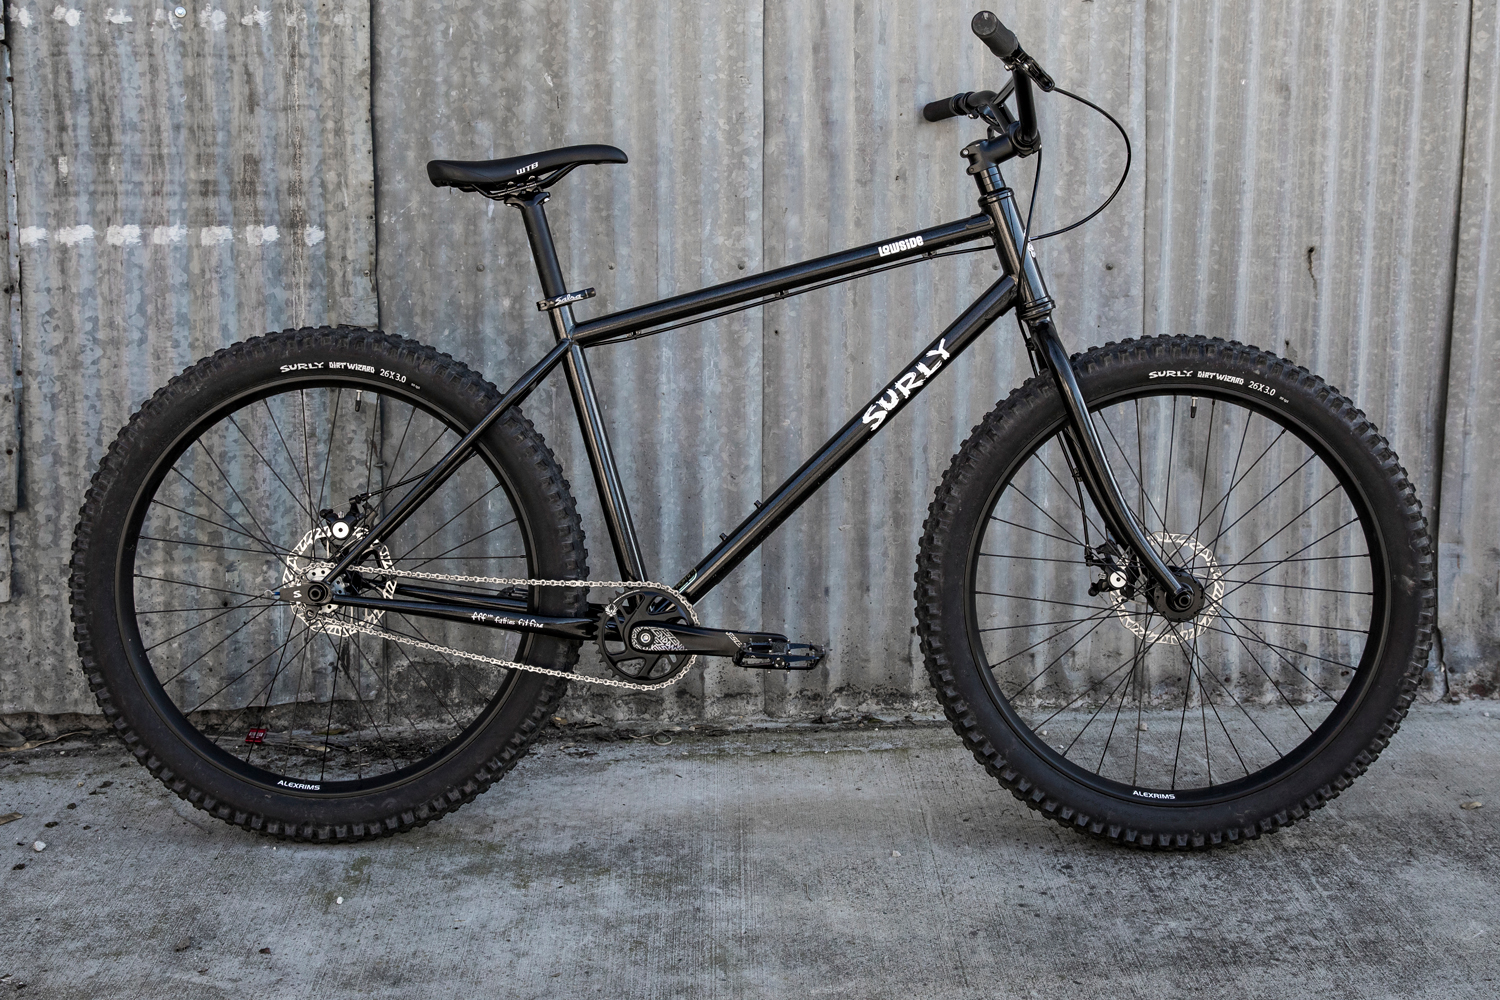 Surly Lowside 1x1